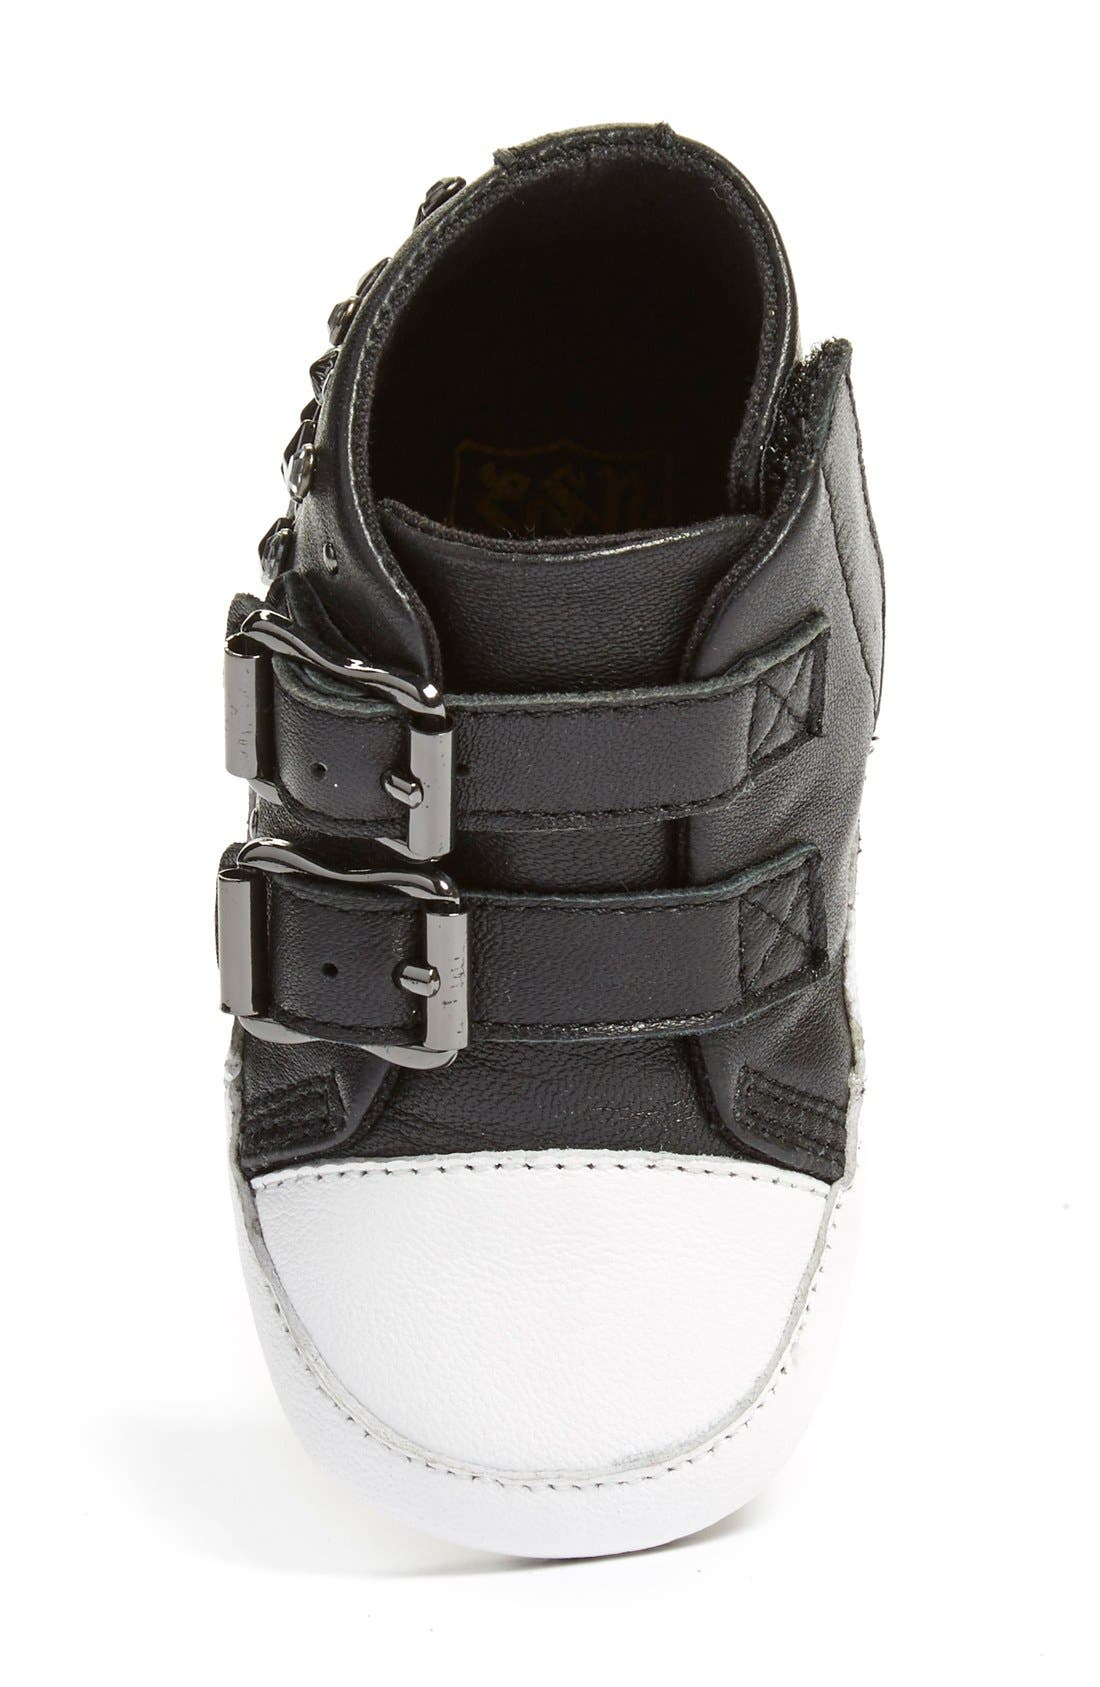 'Viper' High Top Crib Shoe,                             Alternate thumbnail 3, color,                             Black Leather